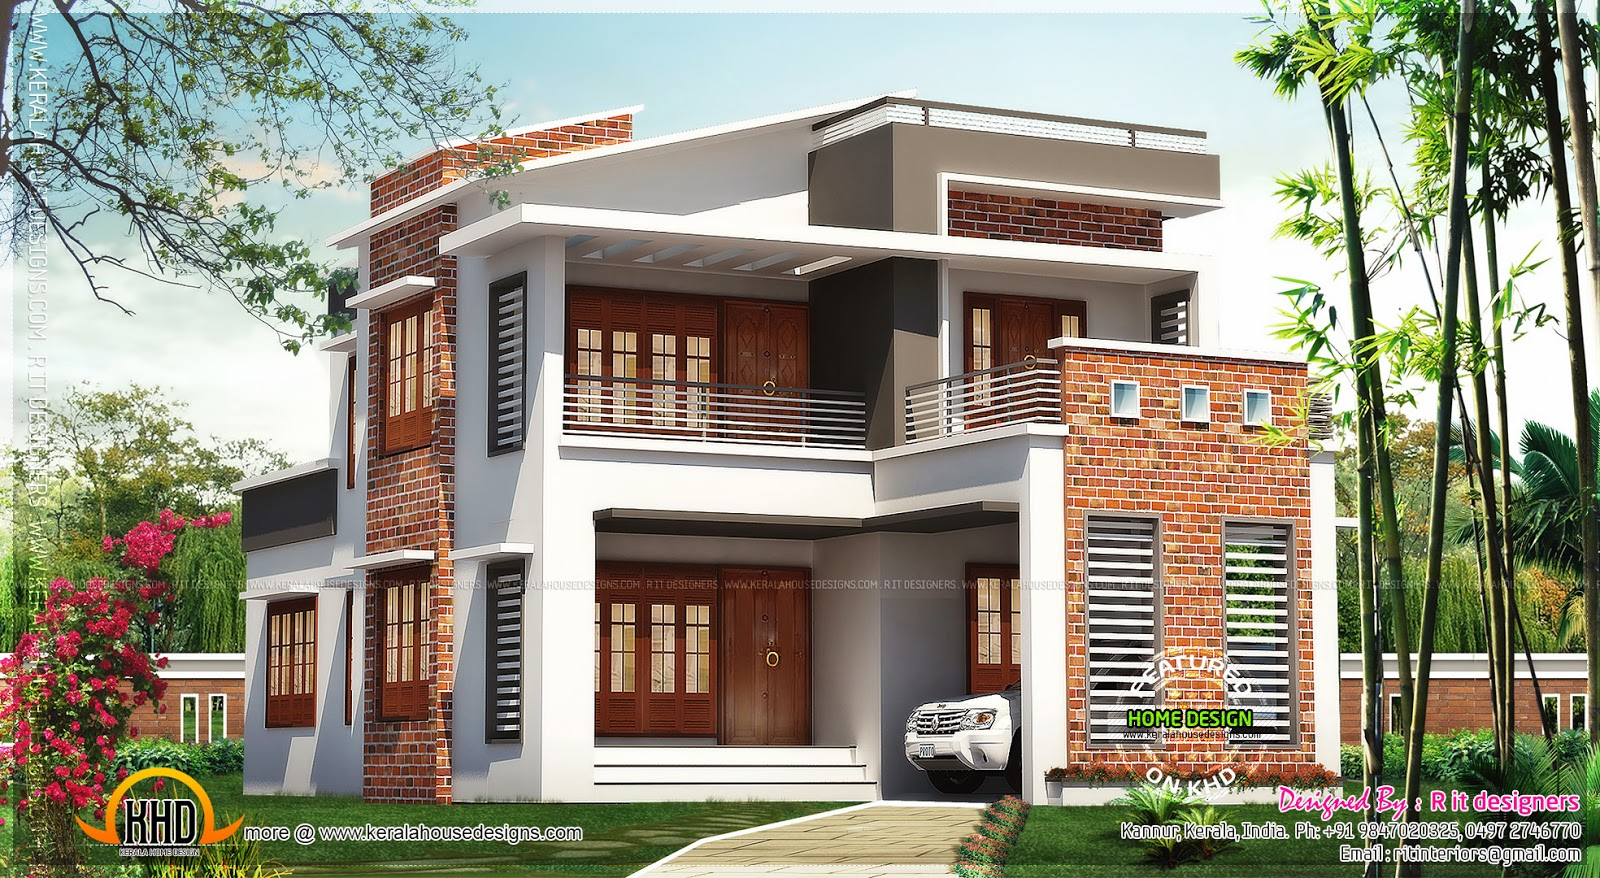 Brick mix house exterior design kerala home design and for Home designs exterior styles